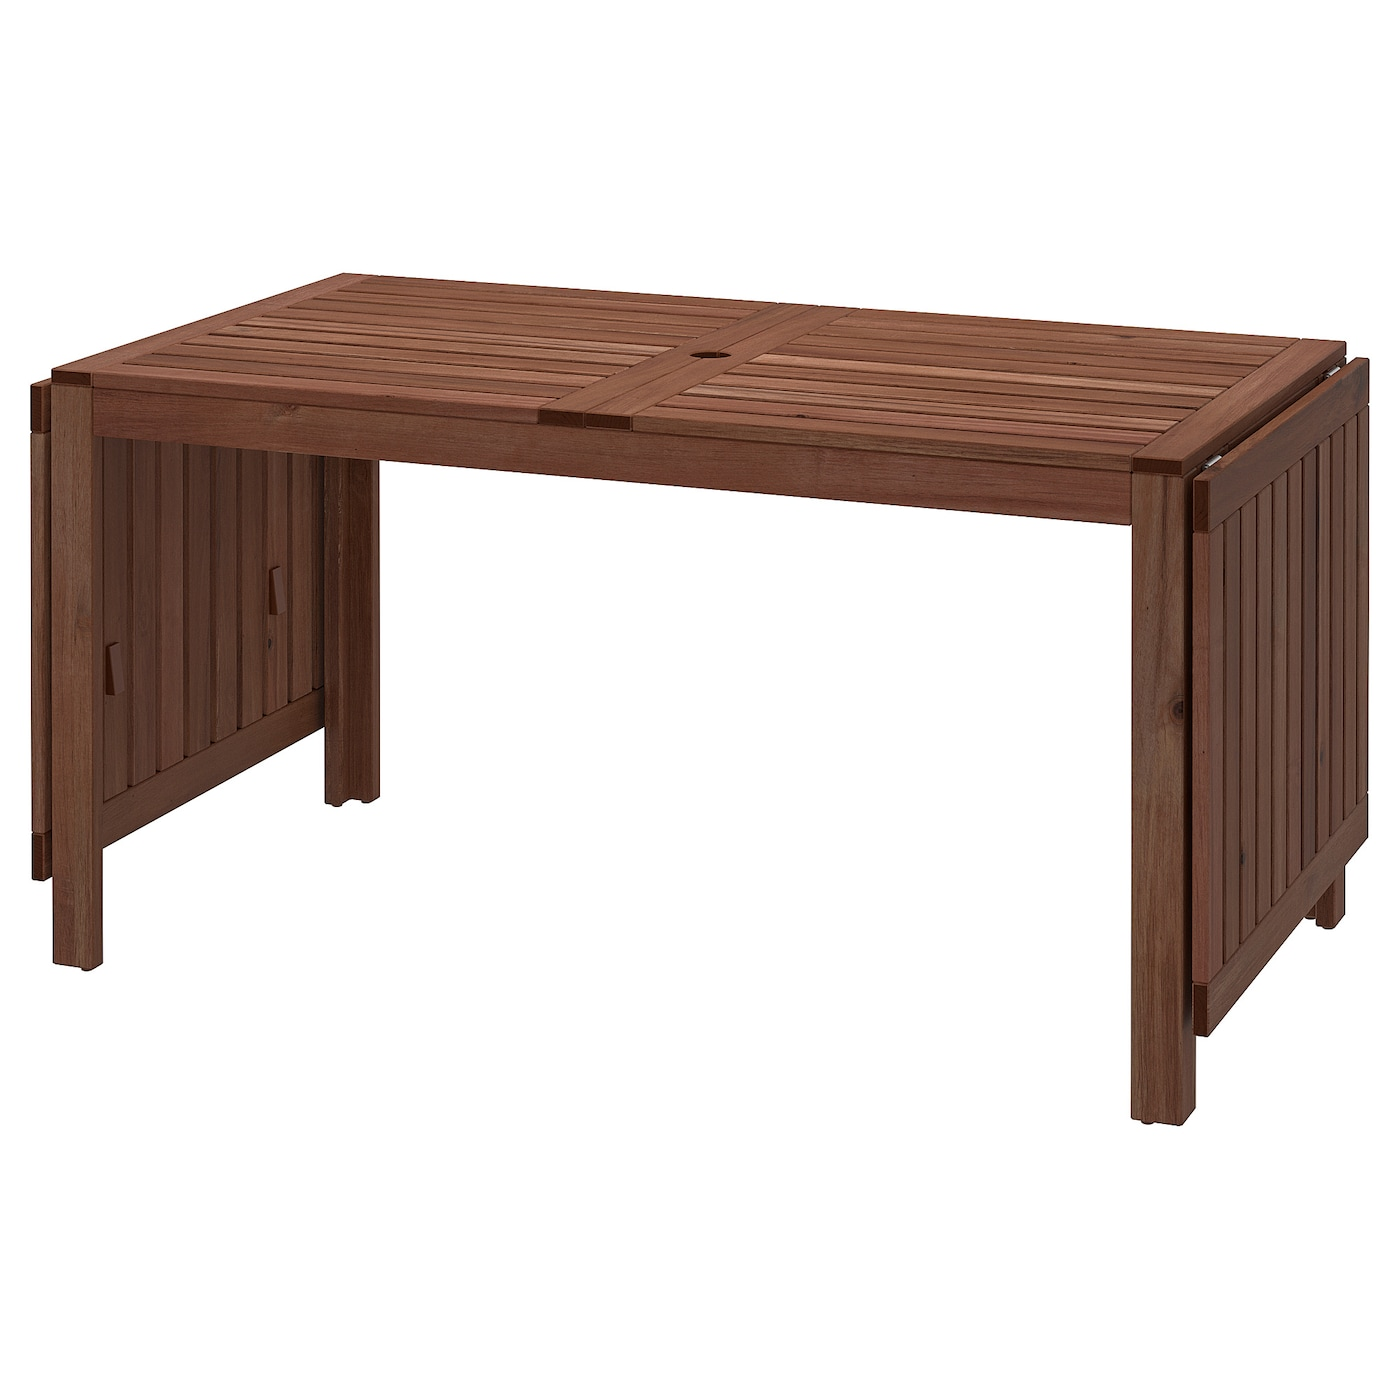 Applaro Drop Leaf Table Outdoor Brown Stained Brown Ikea